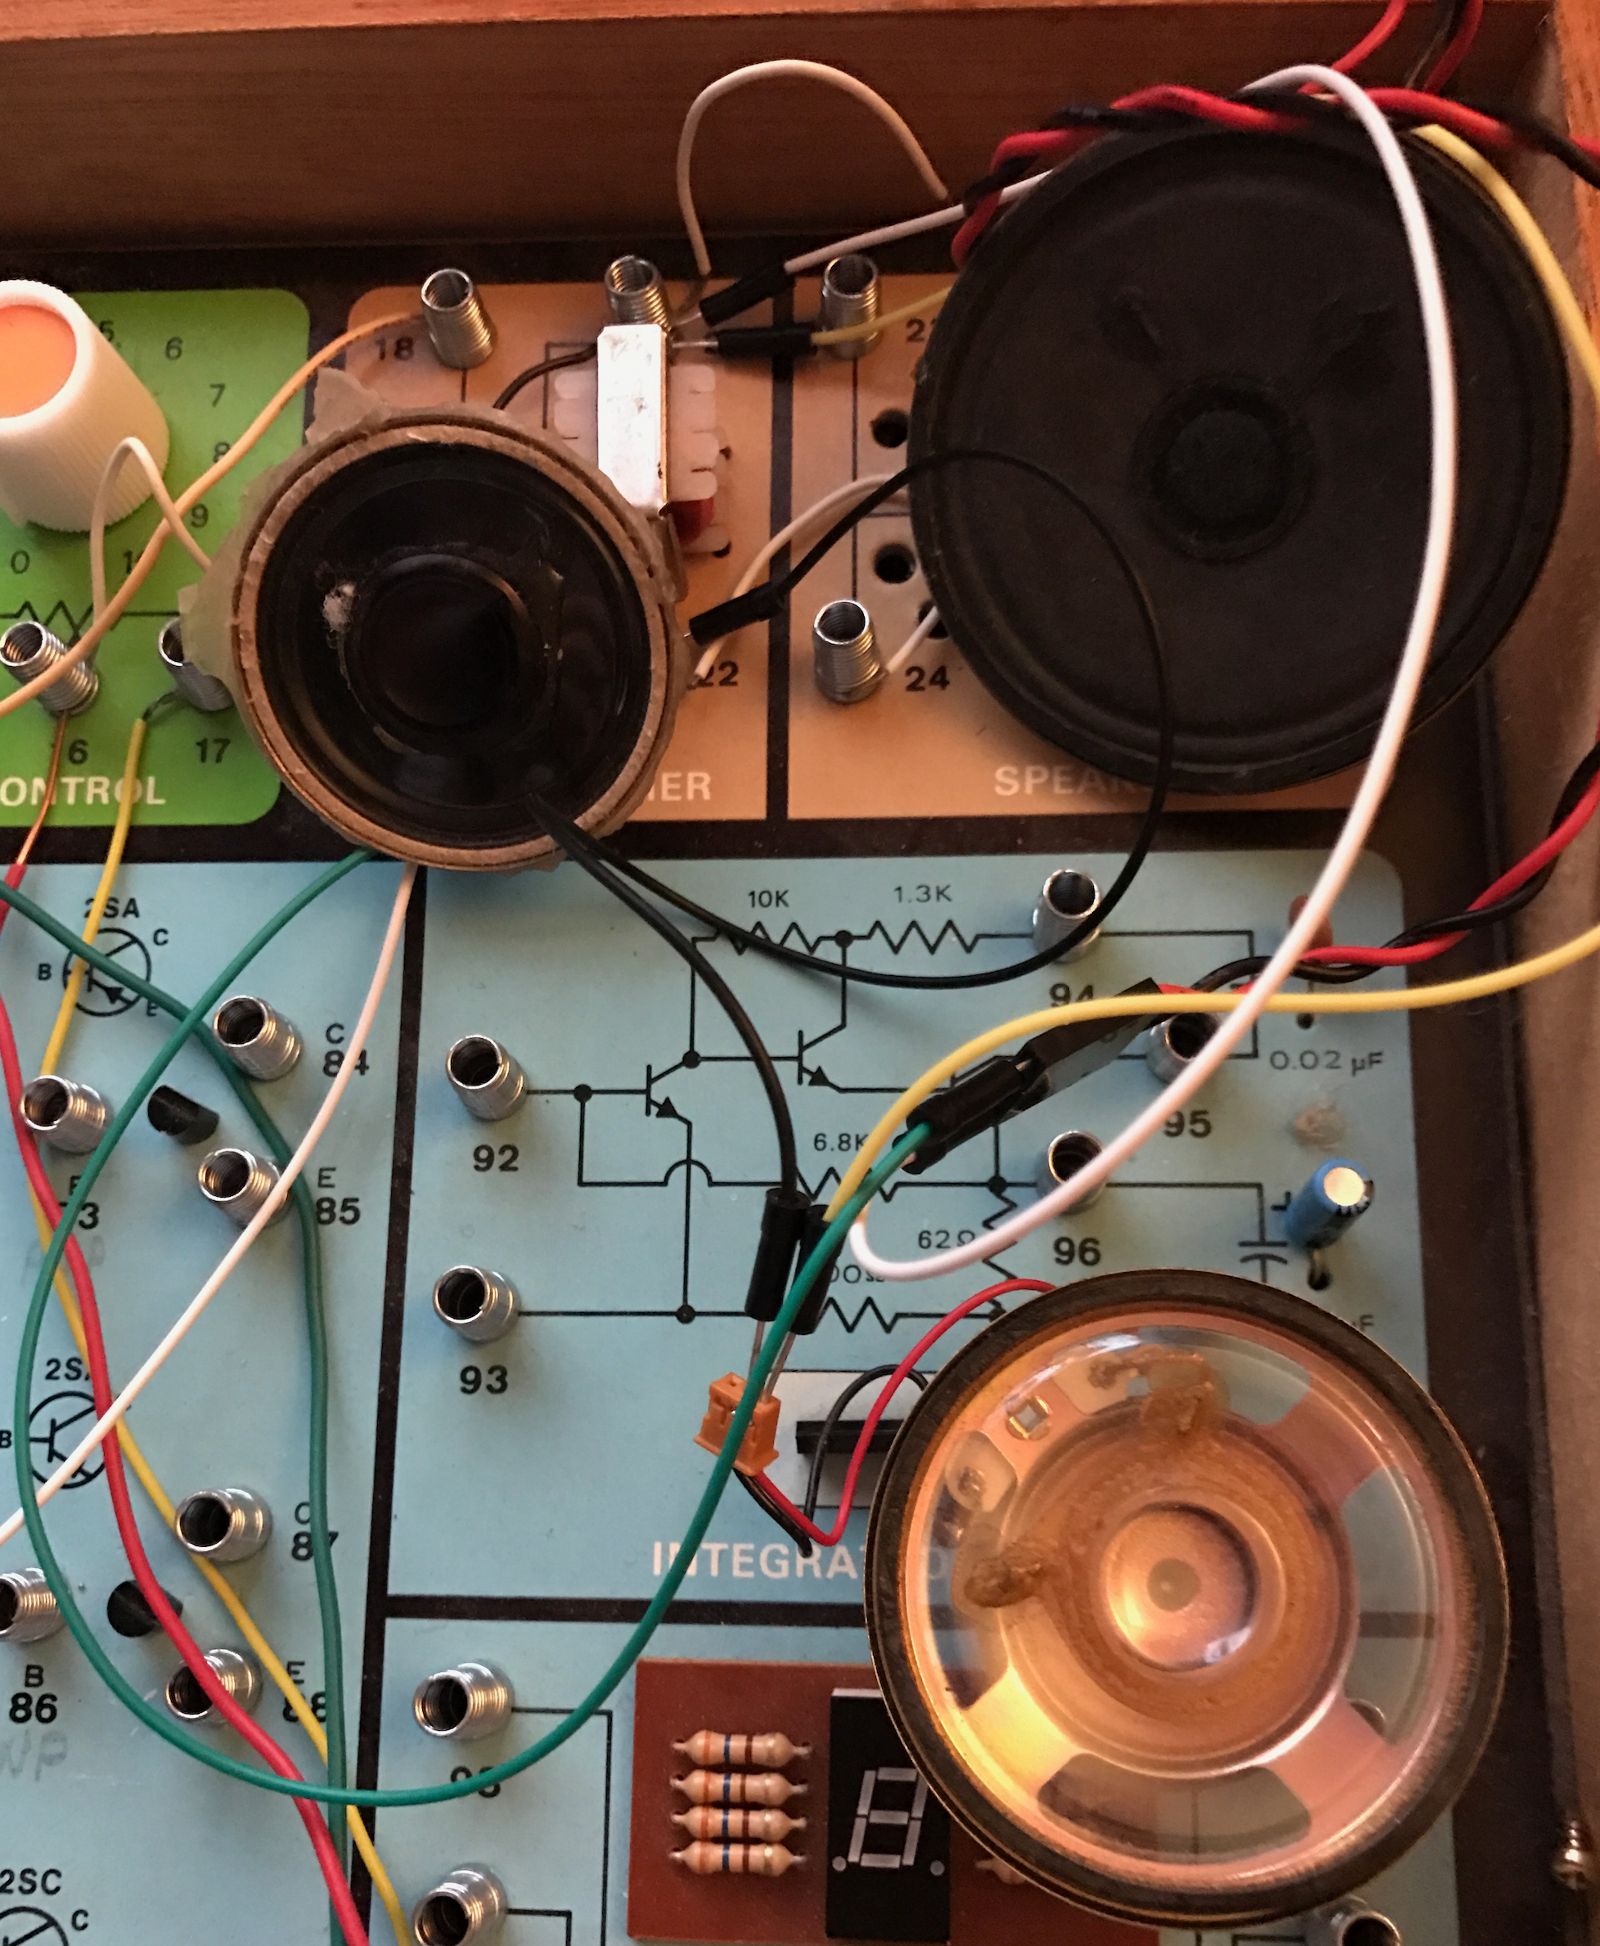 Electronic Project Kits Hands On With A Vintage 160 In 1 And Electronics Engineering Circuits For You Circuit The Speaker Is Only Specified As 57 Mm S 4565 Parts List But I Measured 82 Which Looks About Right Three Extra Speakers Shown Above Were